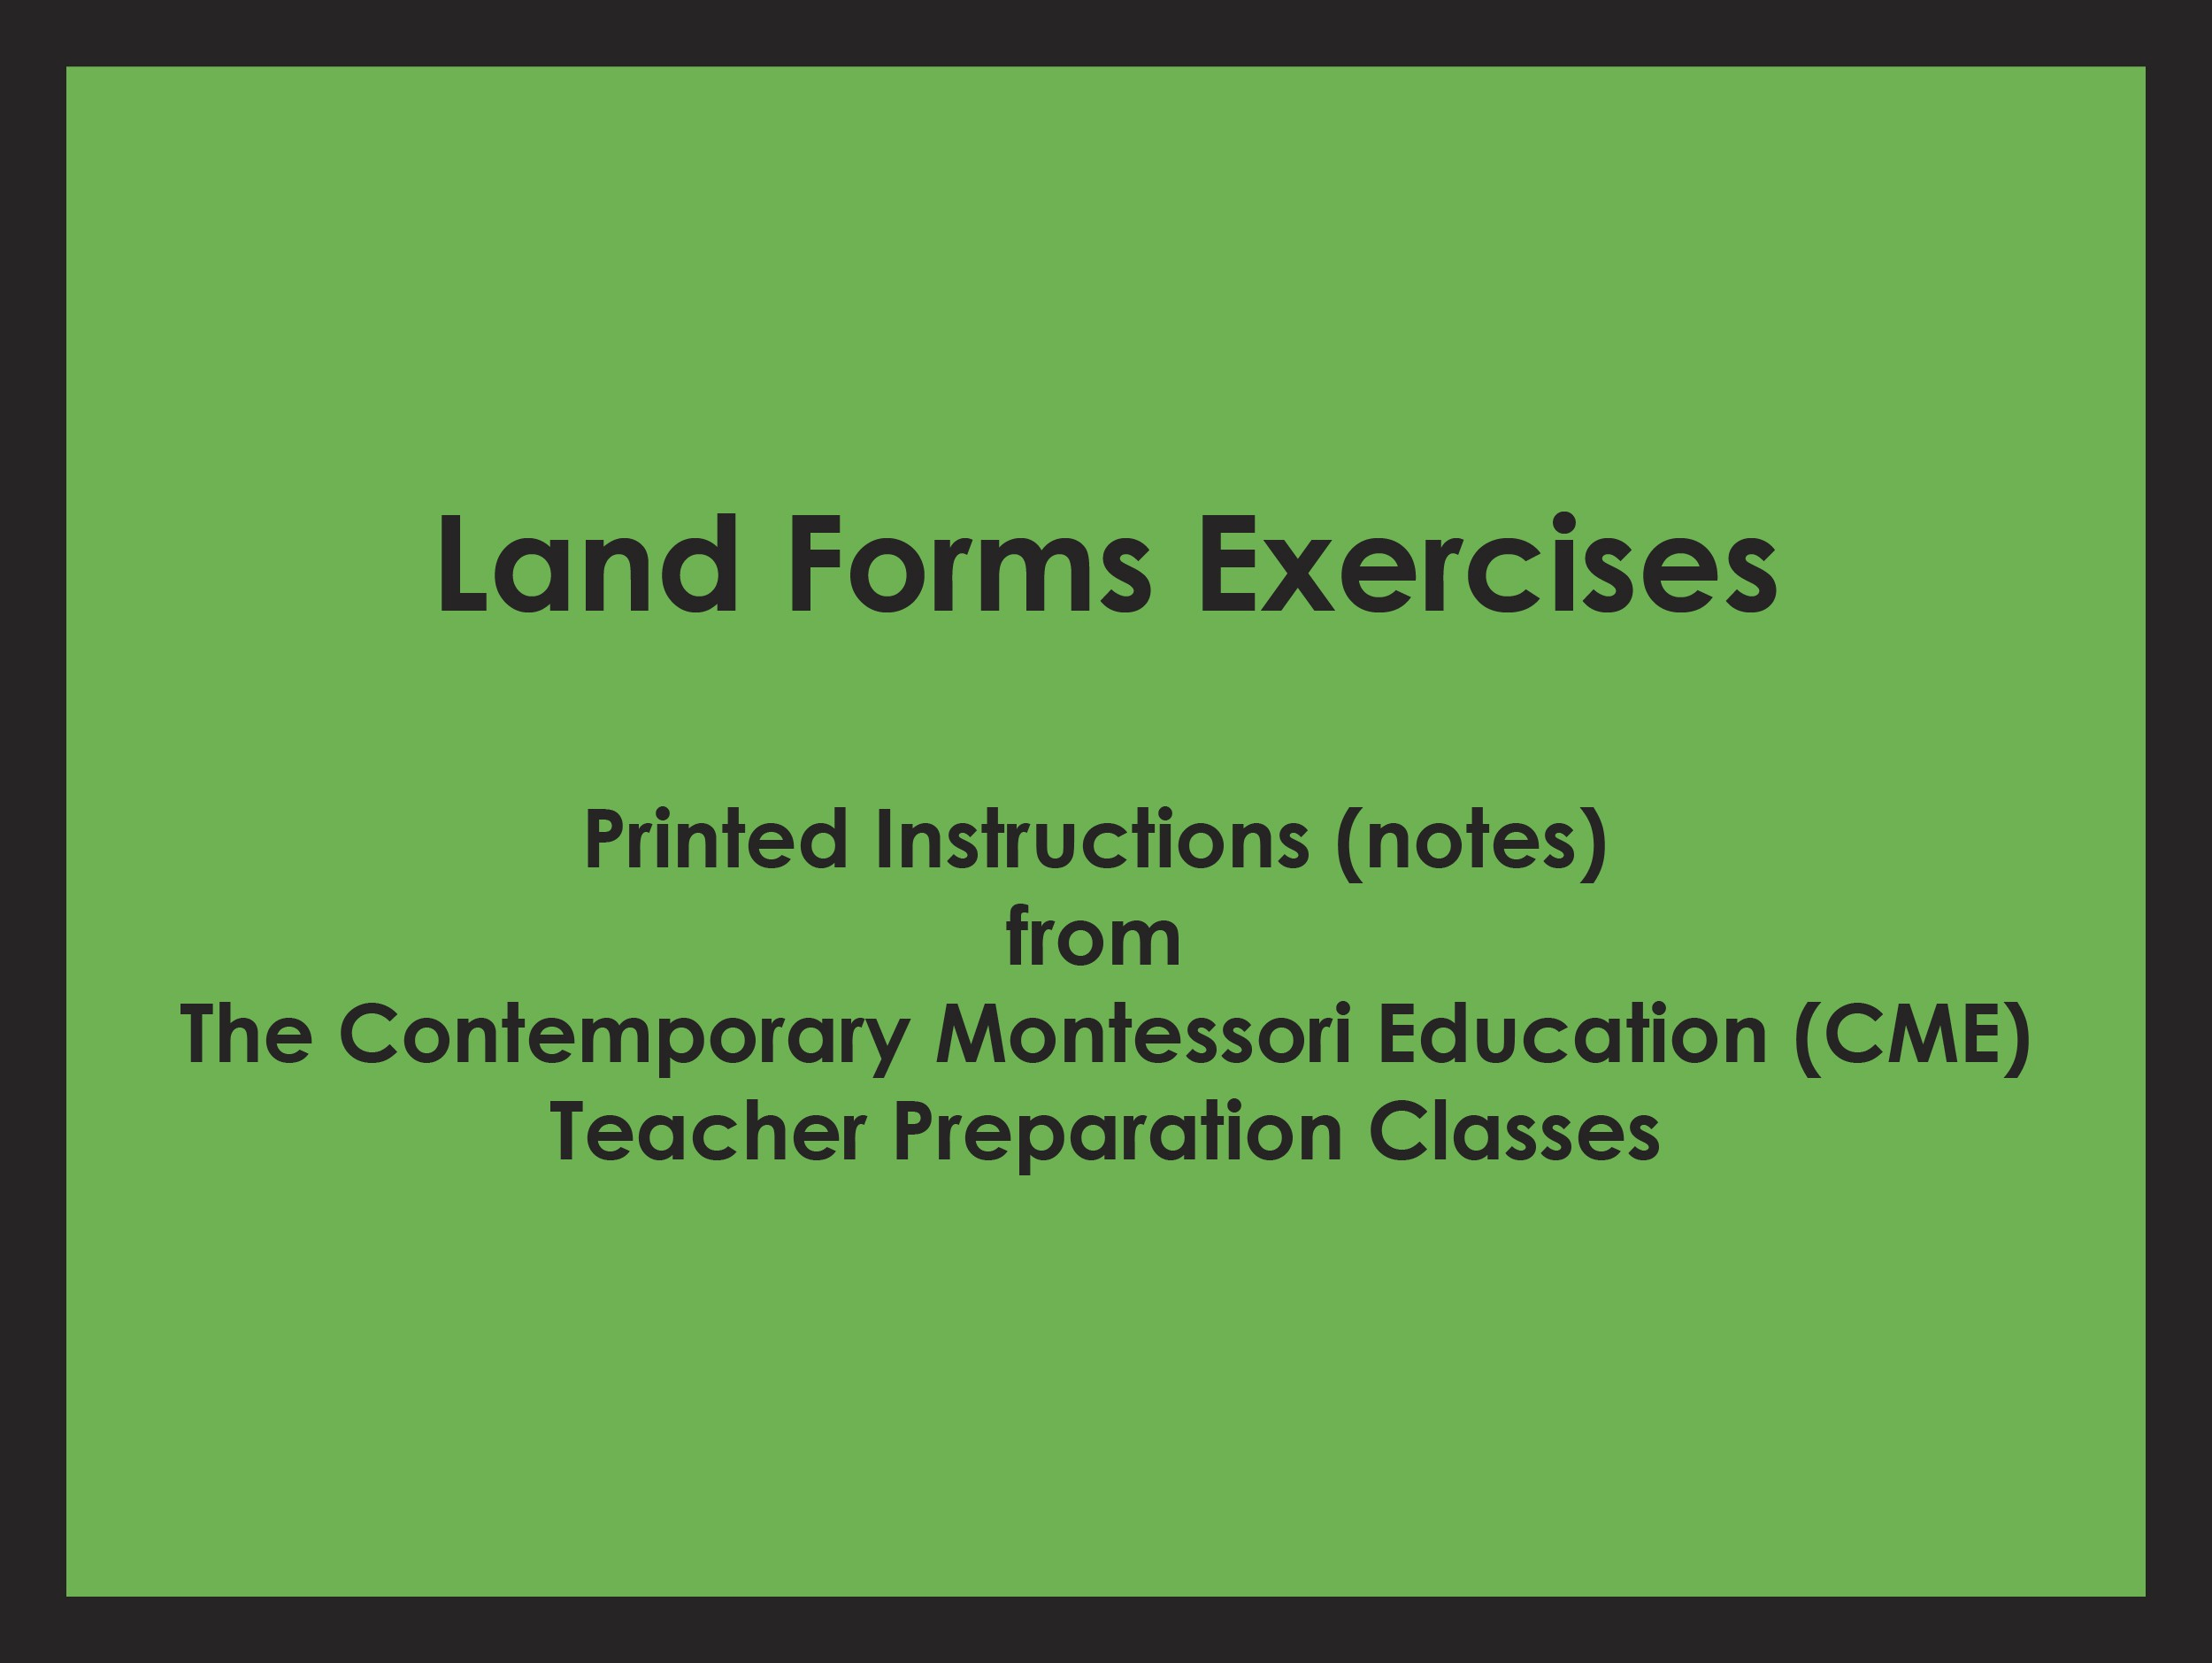 Land Forms Exercises (CME notes) ● SENS-CME-GE-41